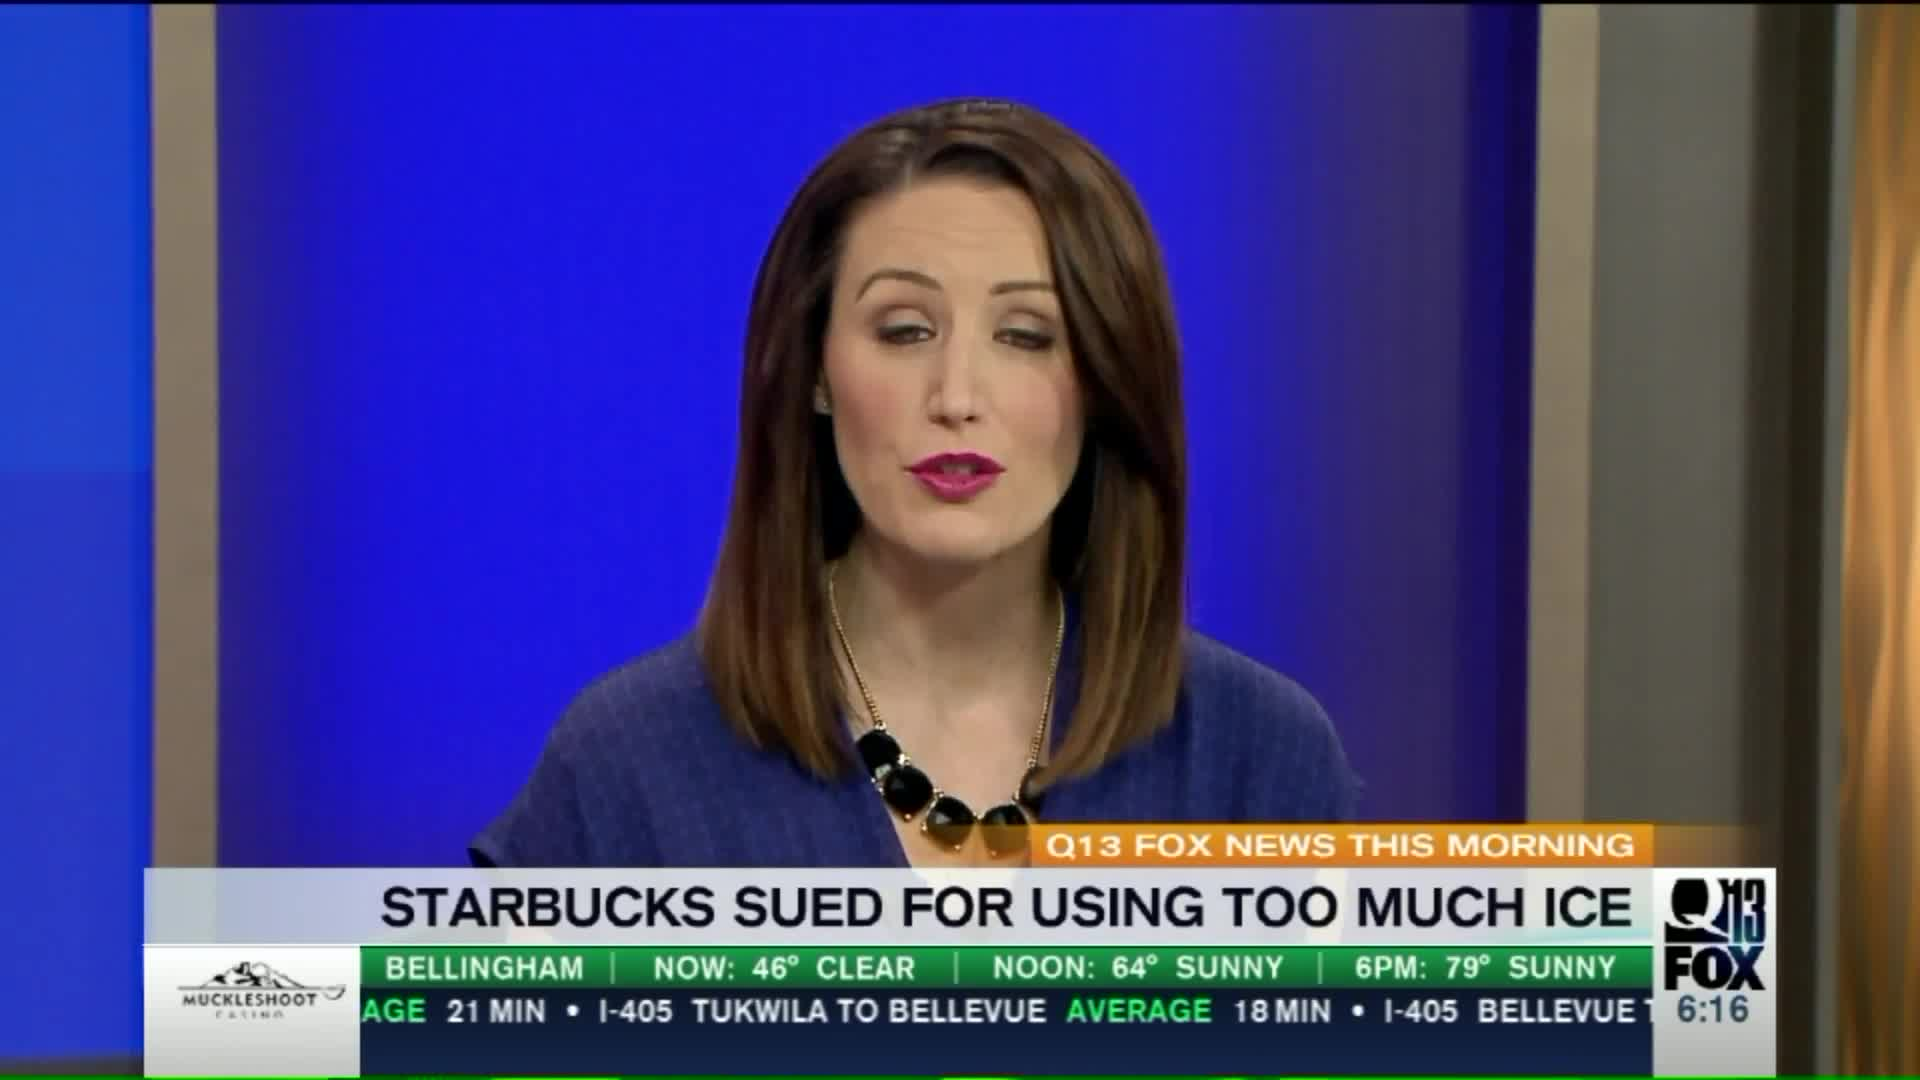 Lawsuit Claims Starbucks' Iced Drinks Have Too Much Ice